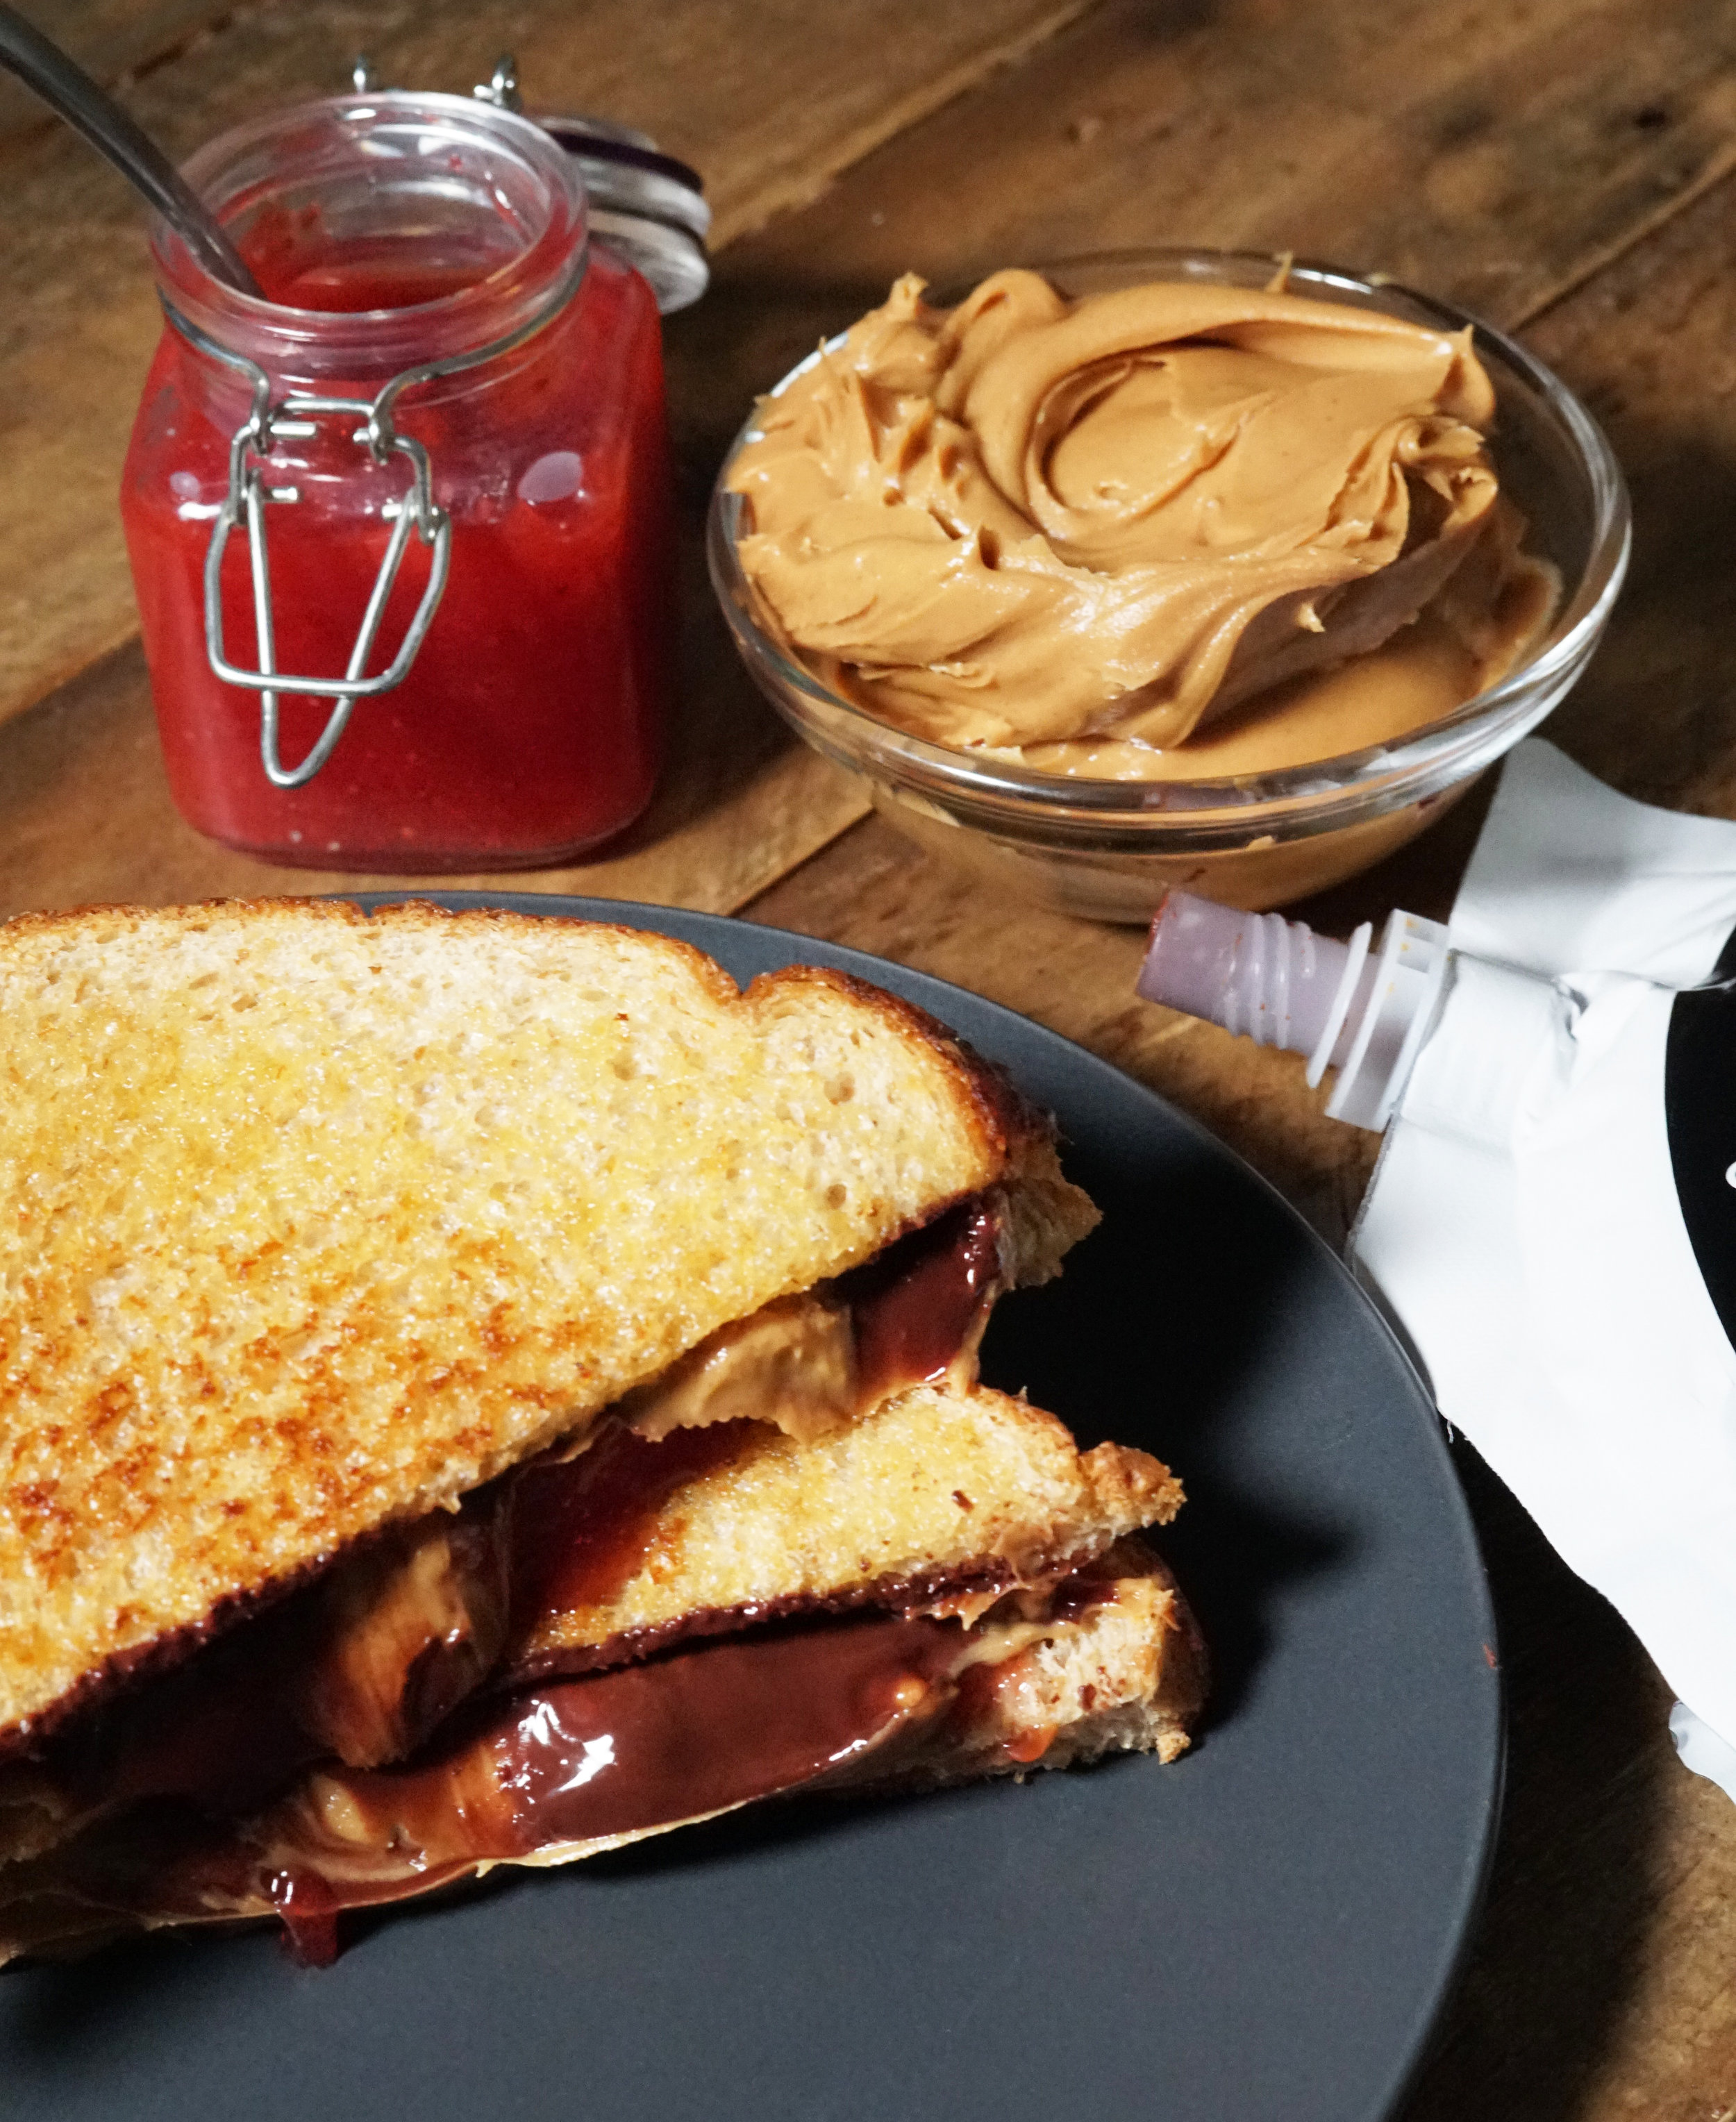 Peanut Butter Jelly and Chocolate Sandwich C.jpg